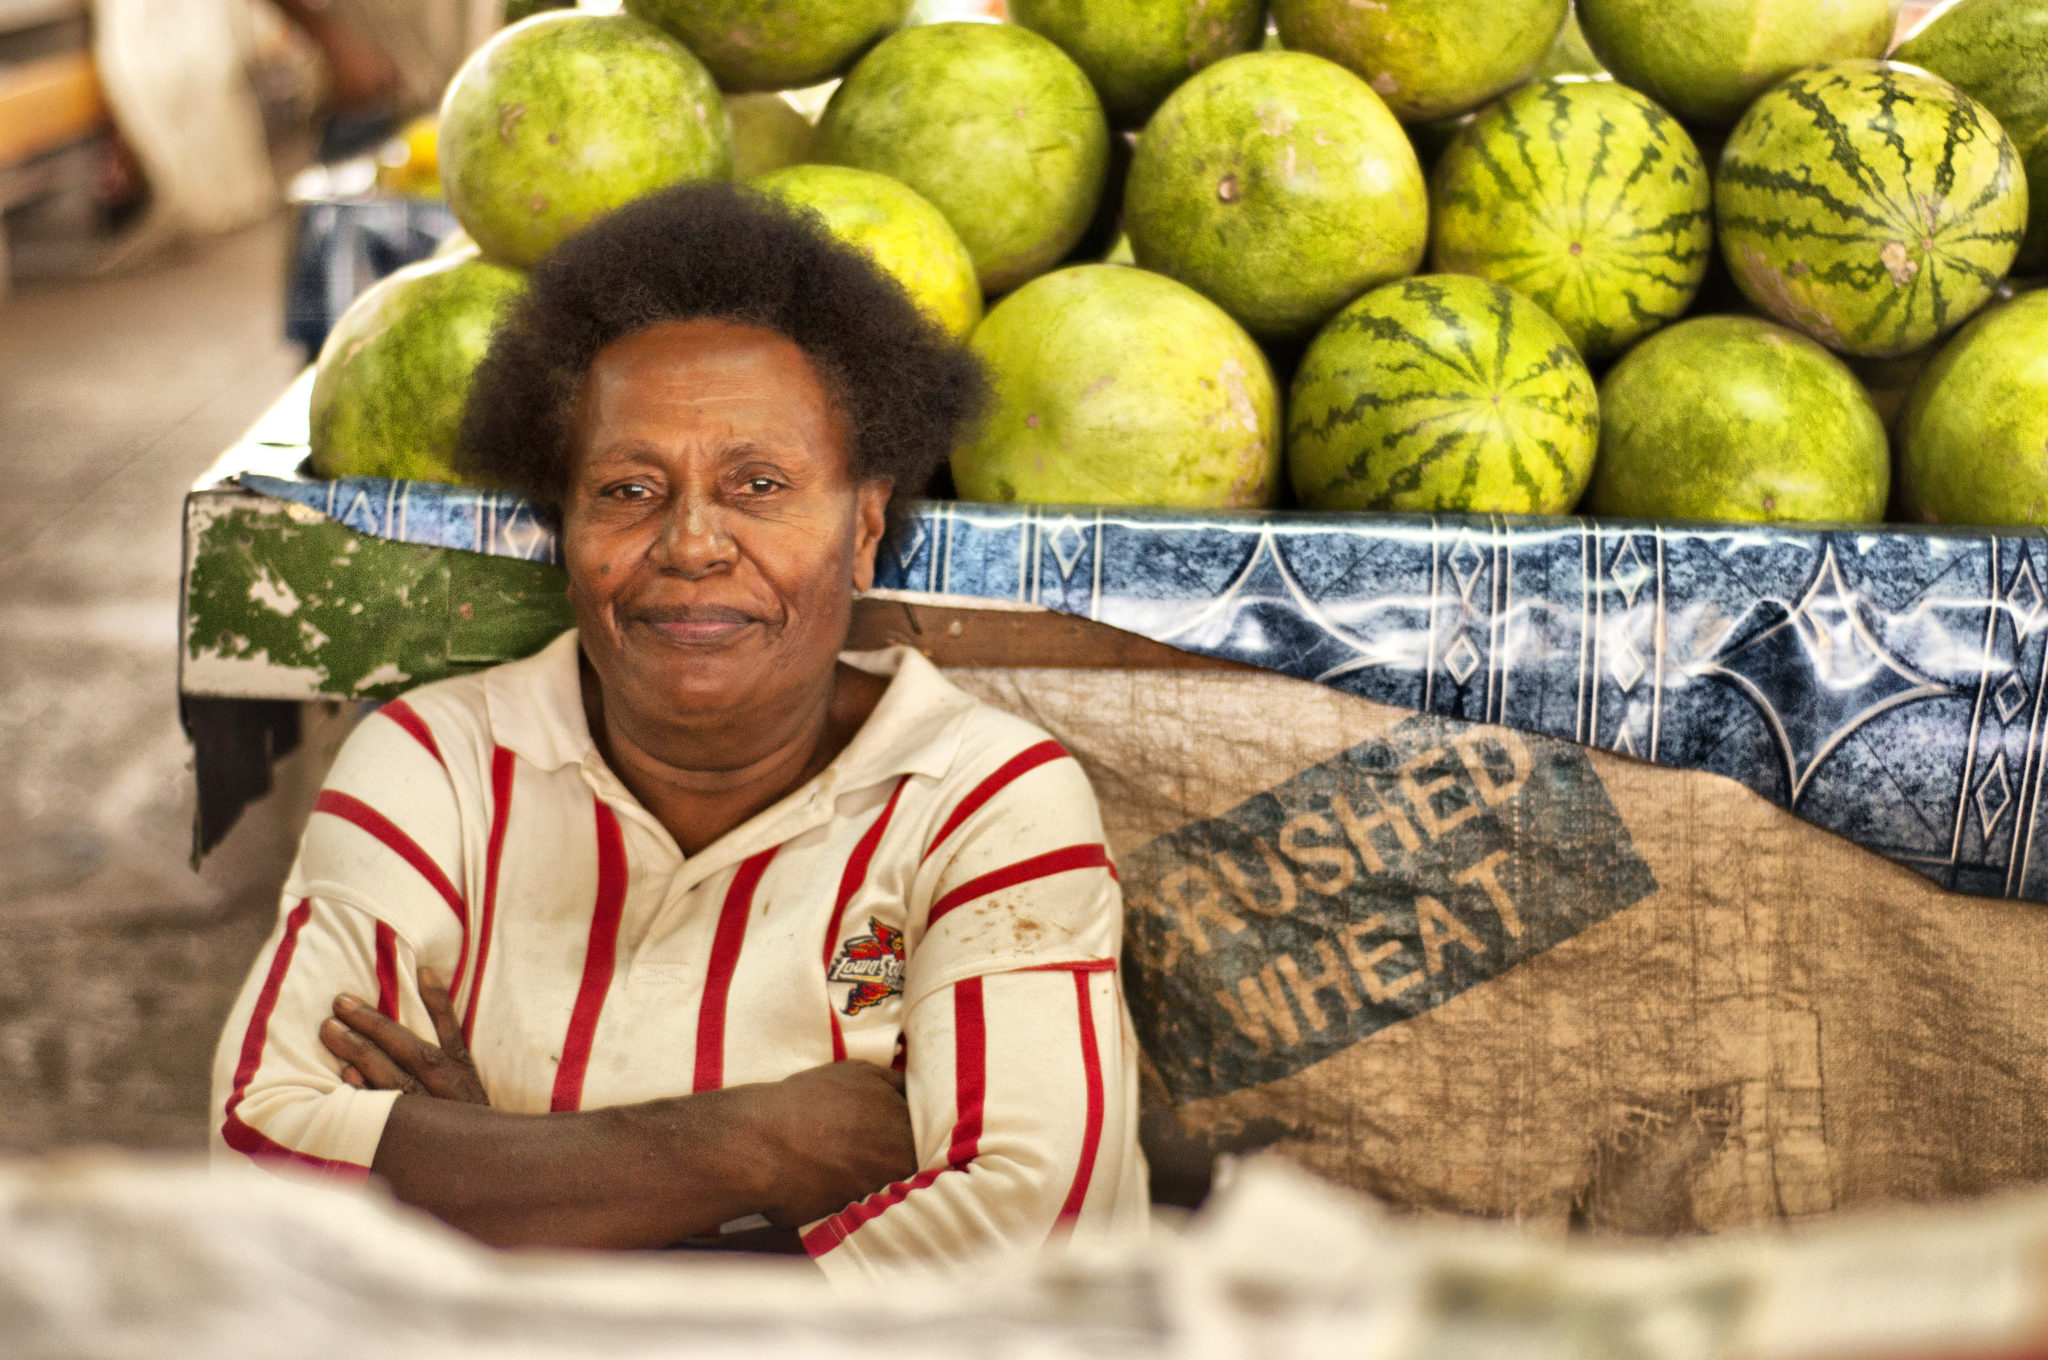 Fiji-Islands-Woman-Watermelon